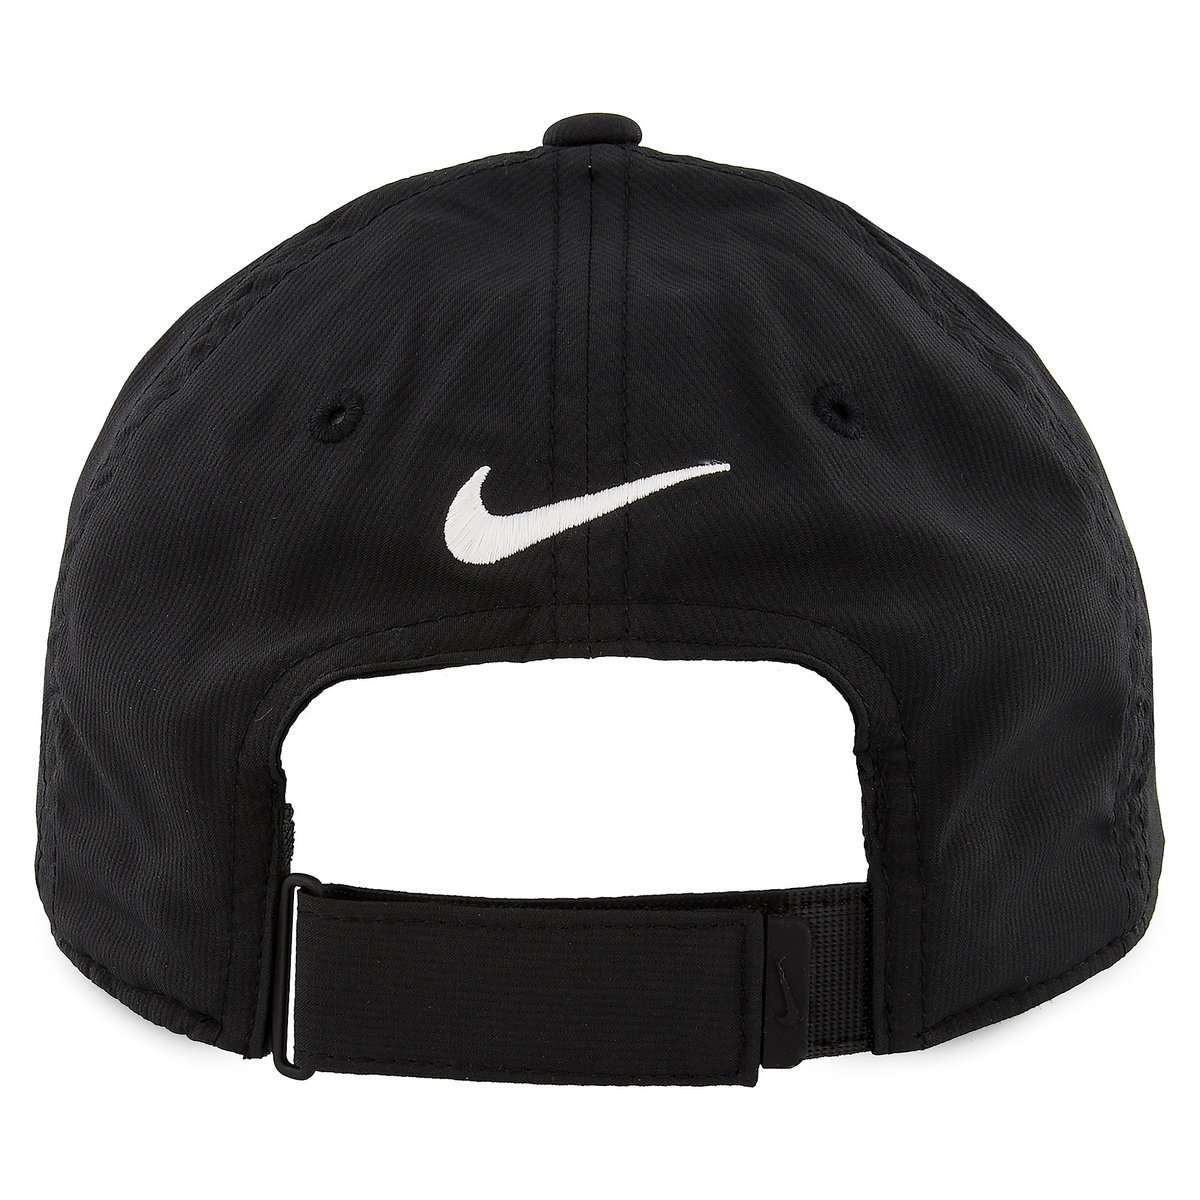 4b00f937a0305 Product Image of Mickey Mouse Performance Baseball Cap for Adults by Nike    2